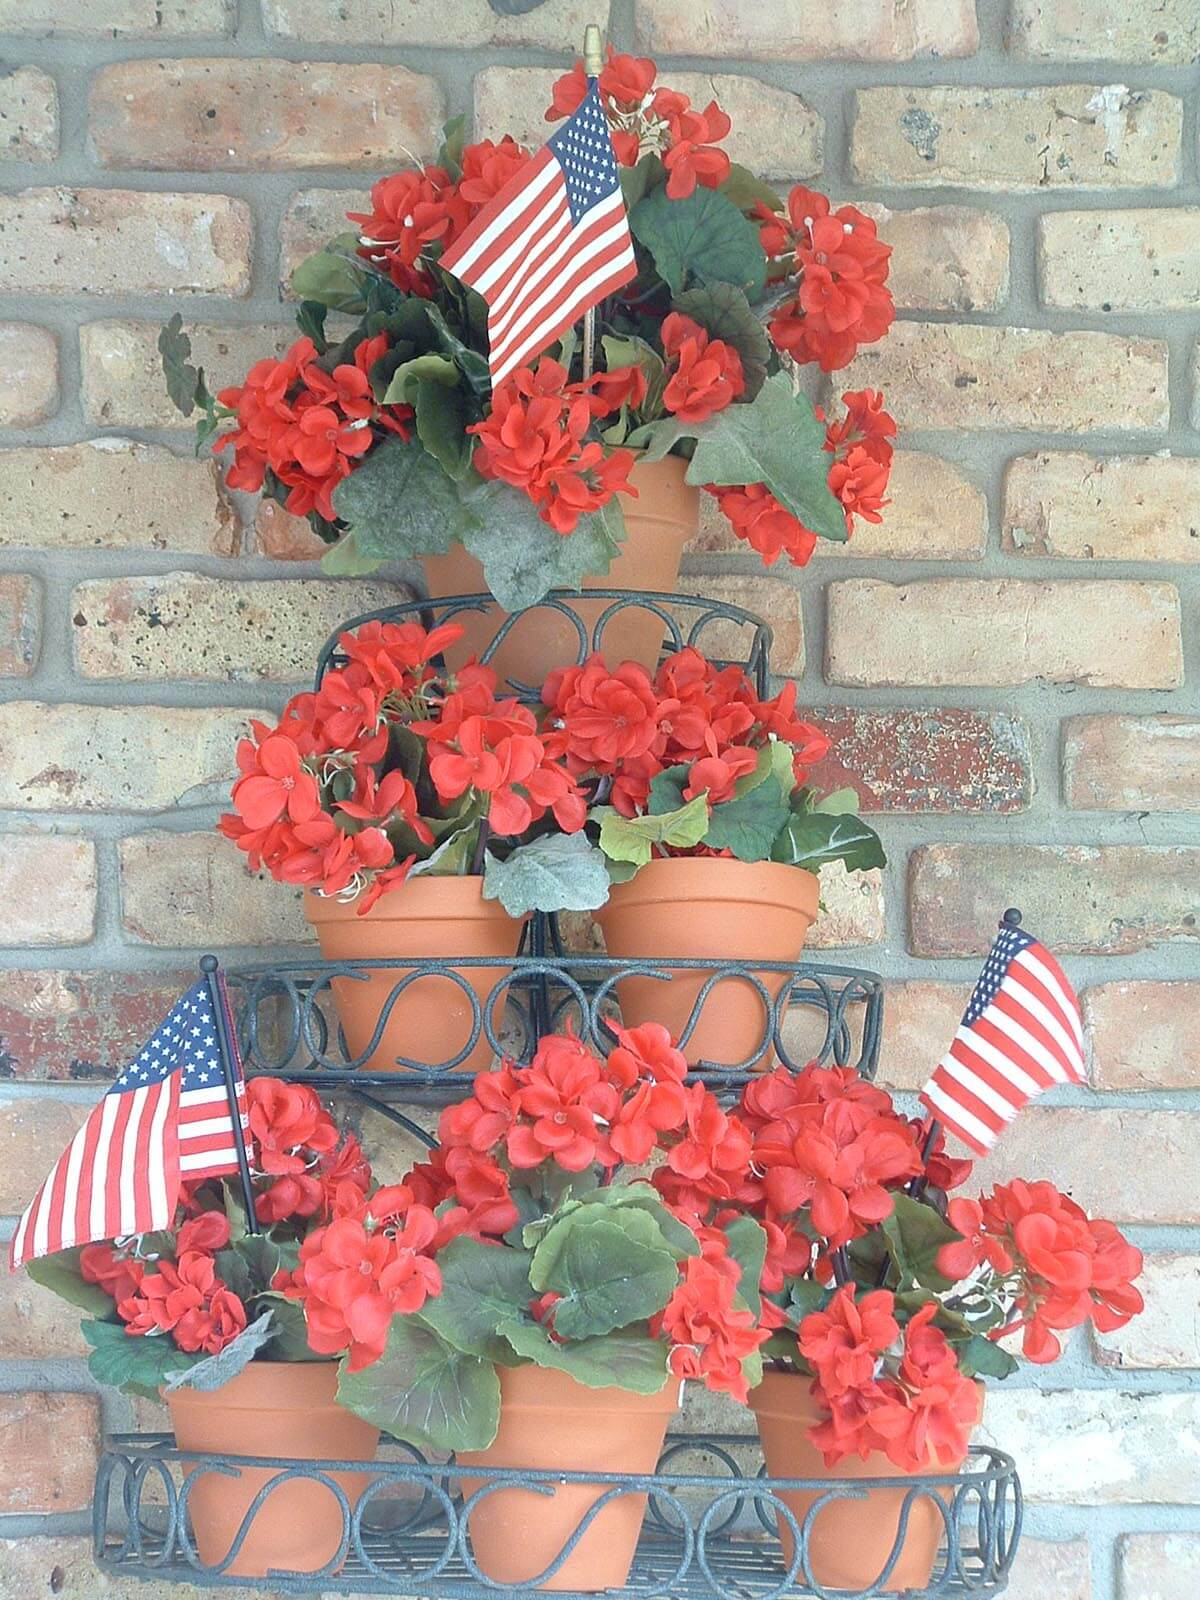 Patriotic Three-Tier Floral Arrangement